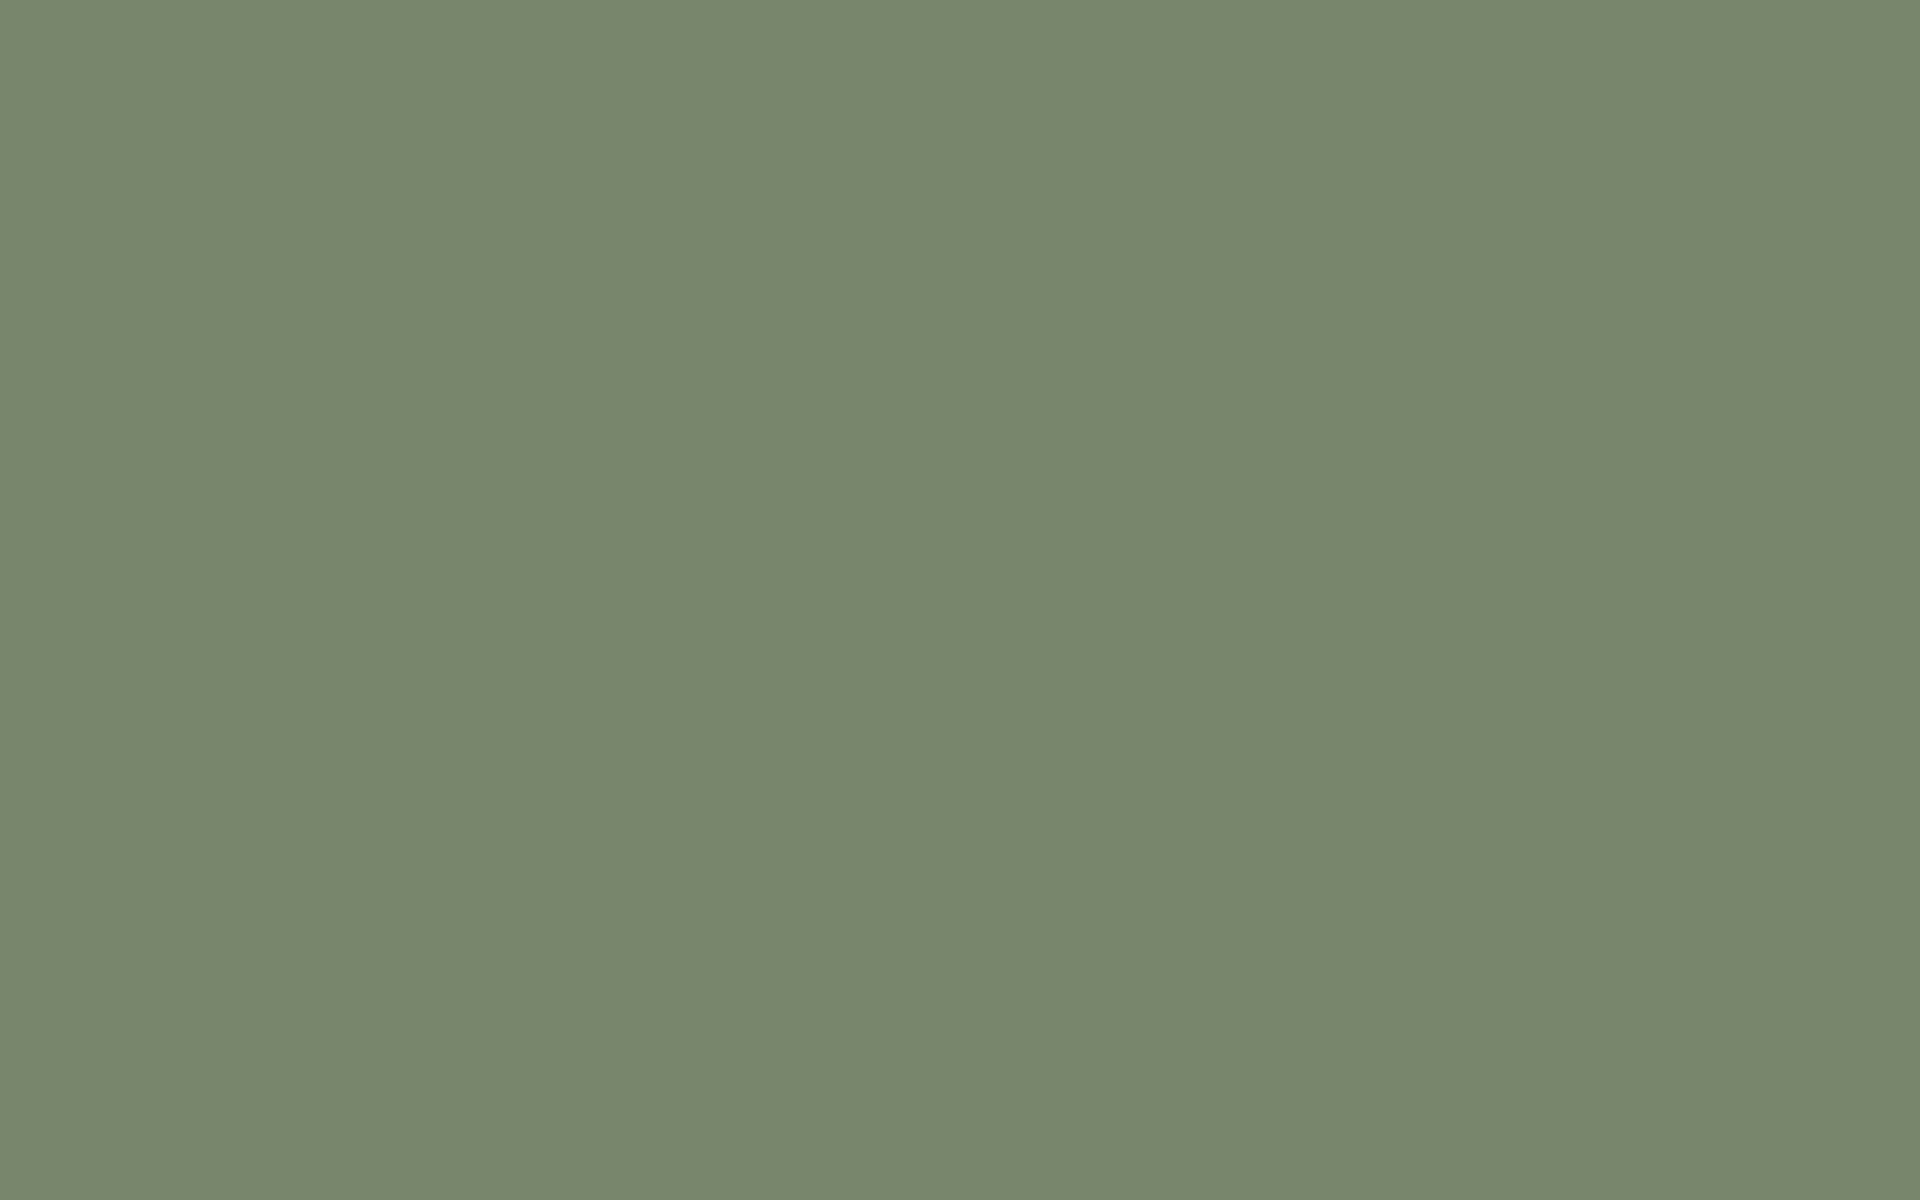 1920x1200 Camouflage Green Solid Color Background